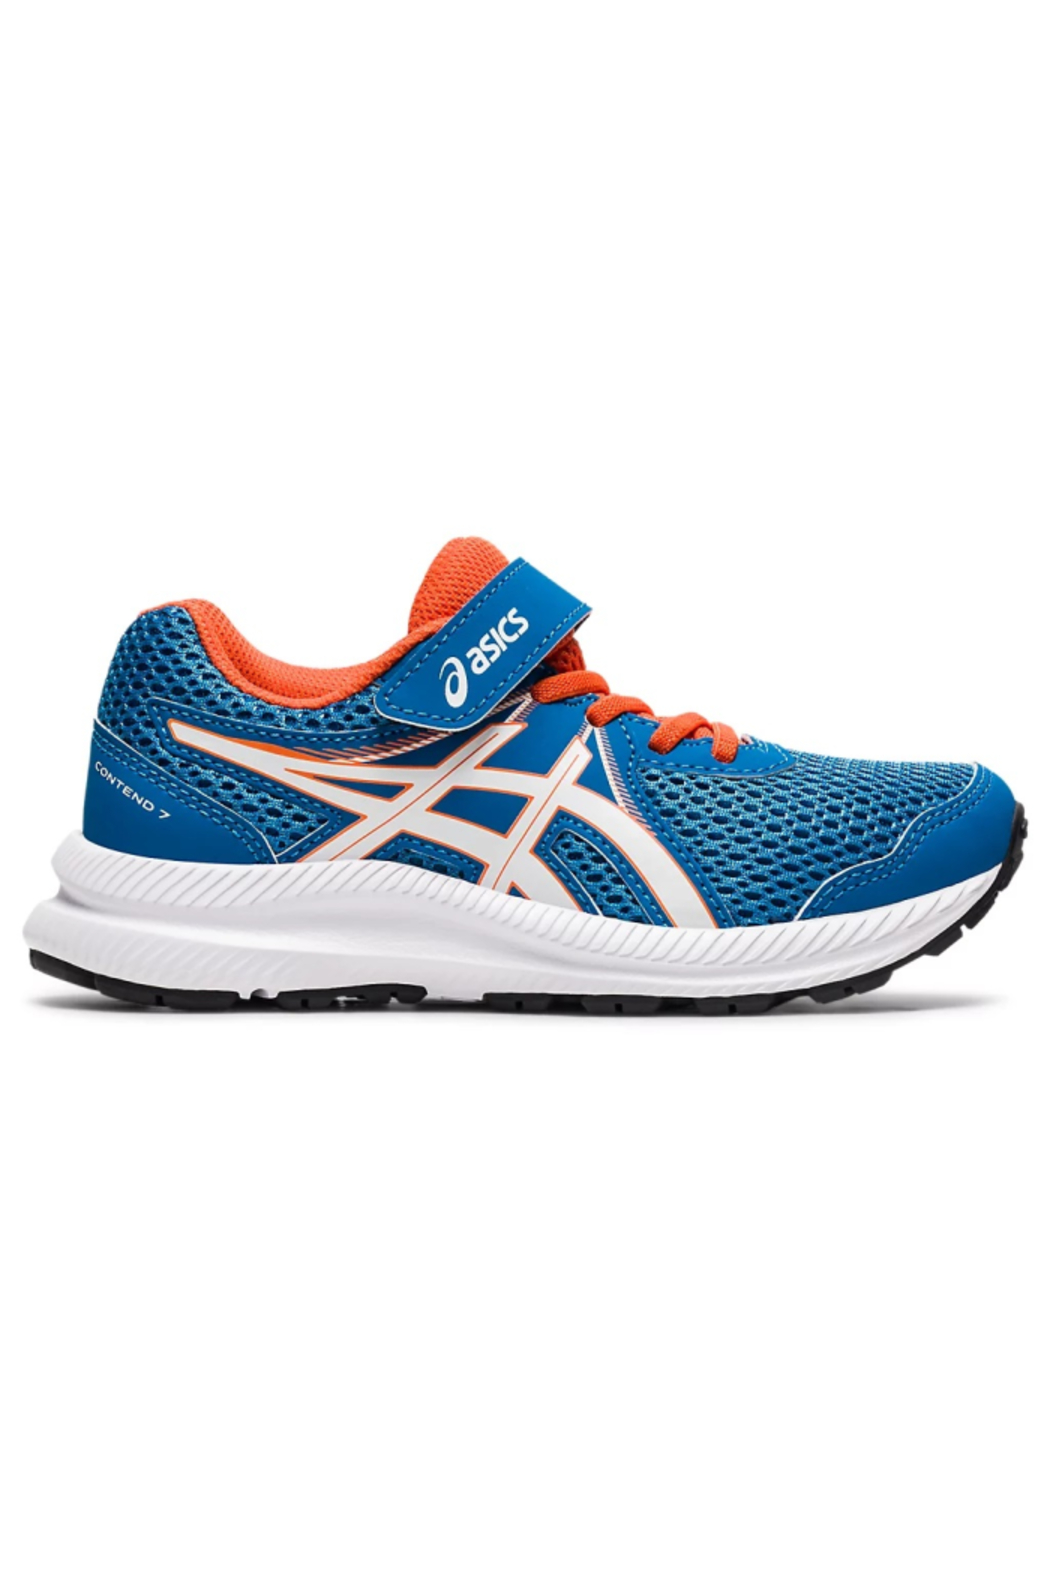 Asics Kids Contend 7 PS - Main Image